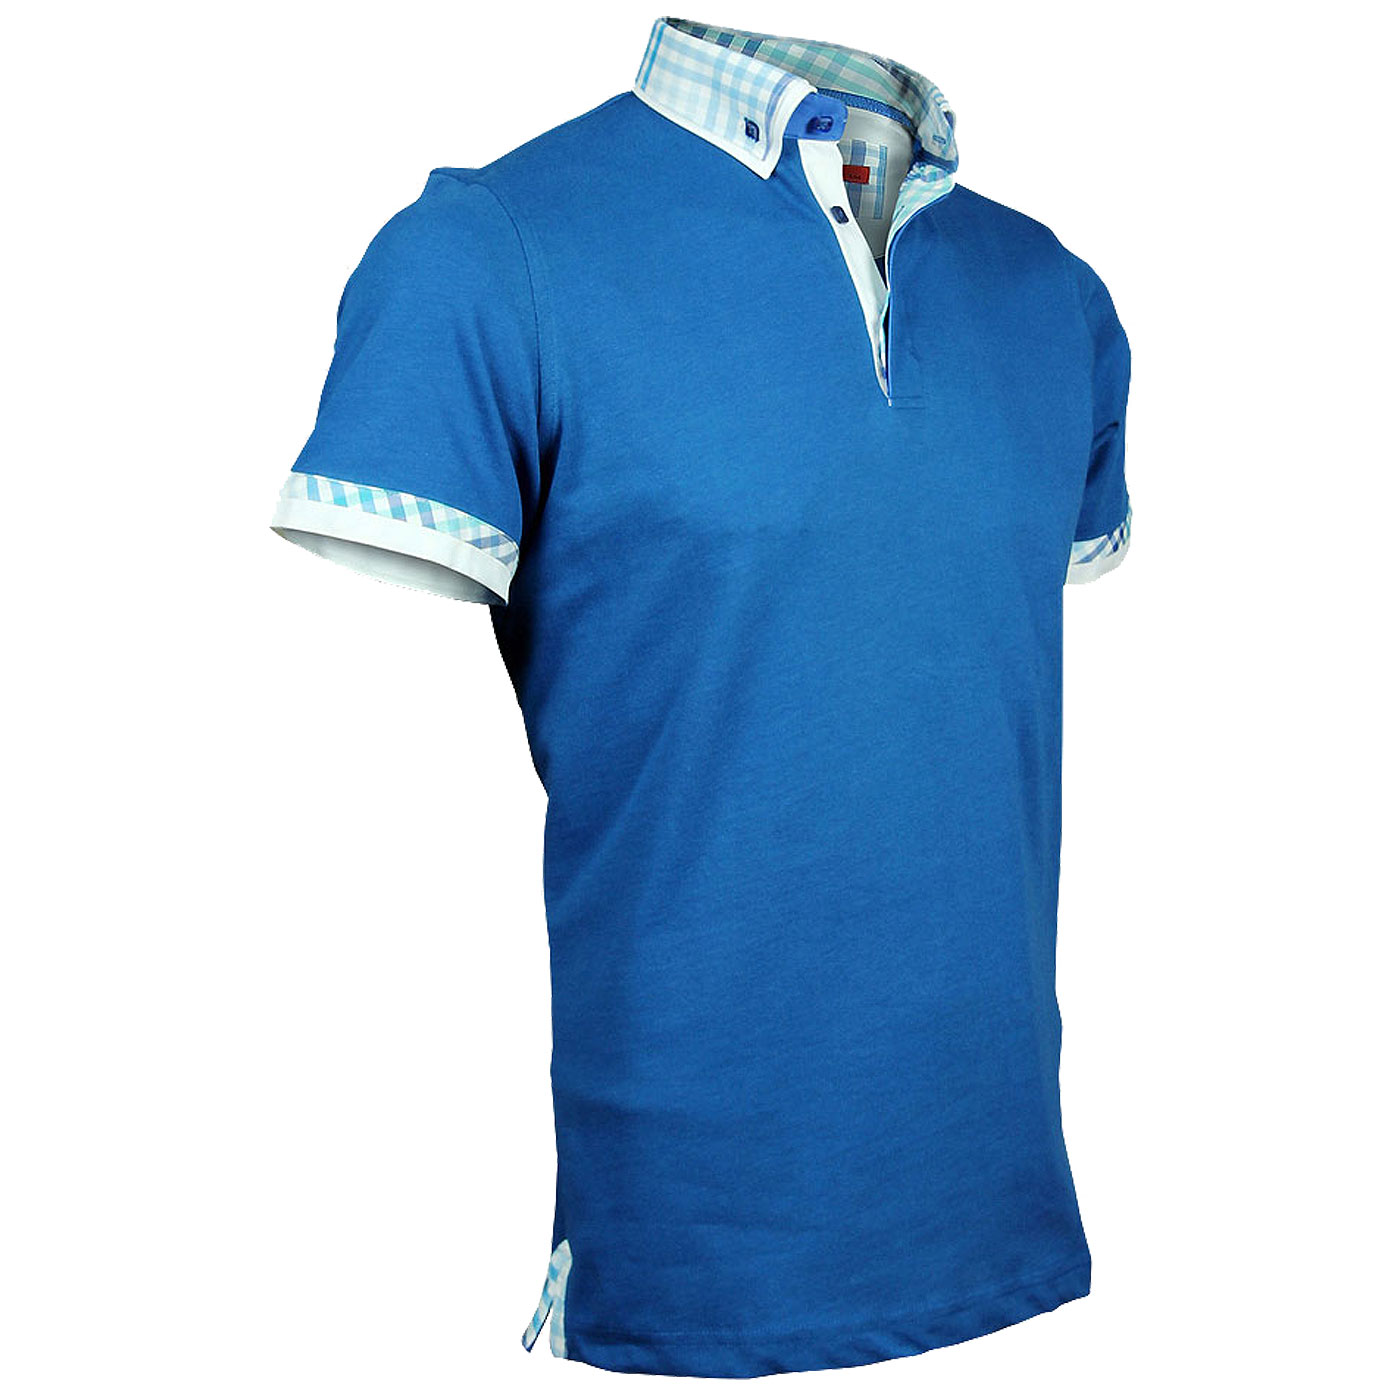 Polo Manche Courte Homme Collection Polo Chemiseweb